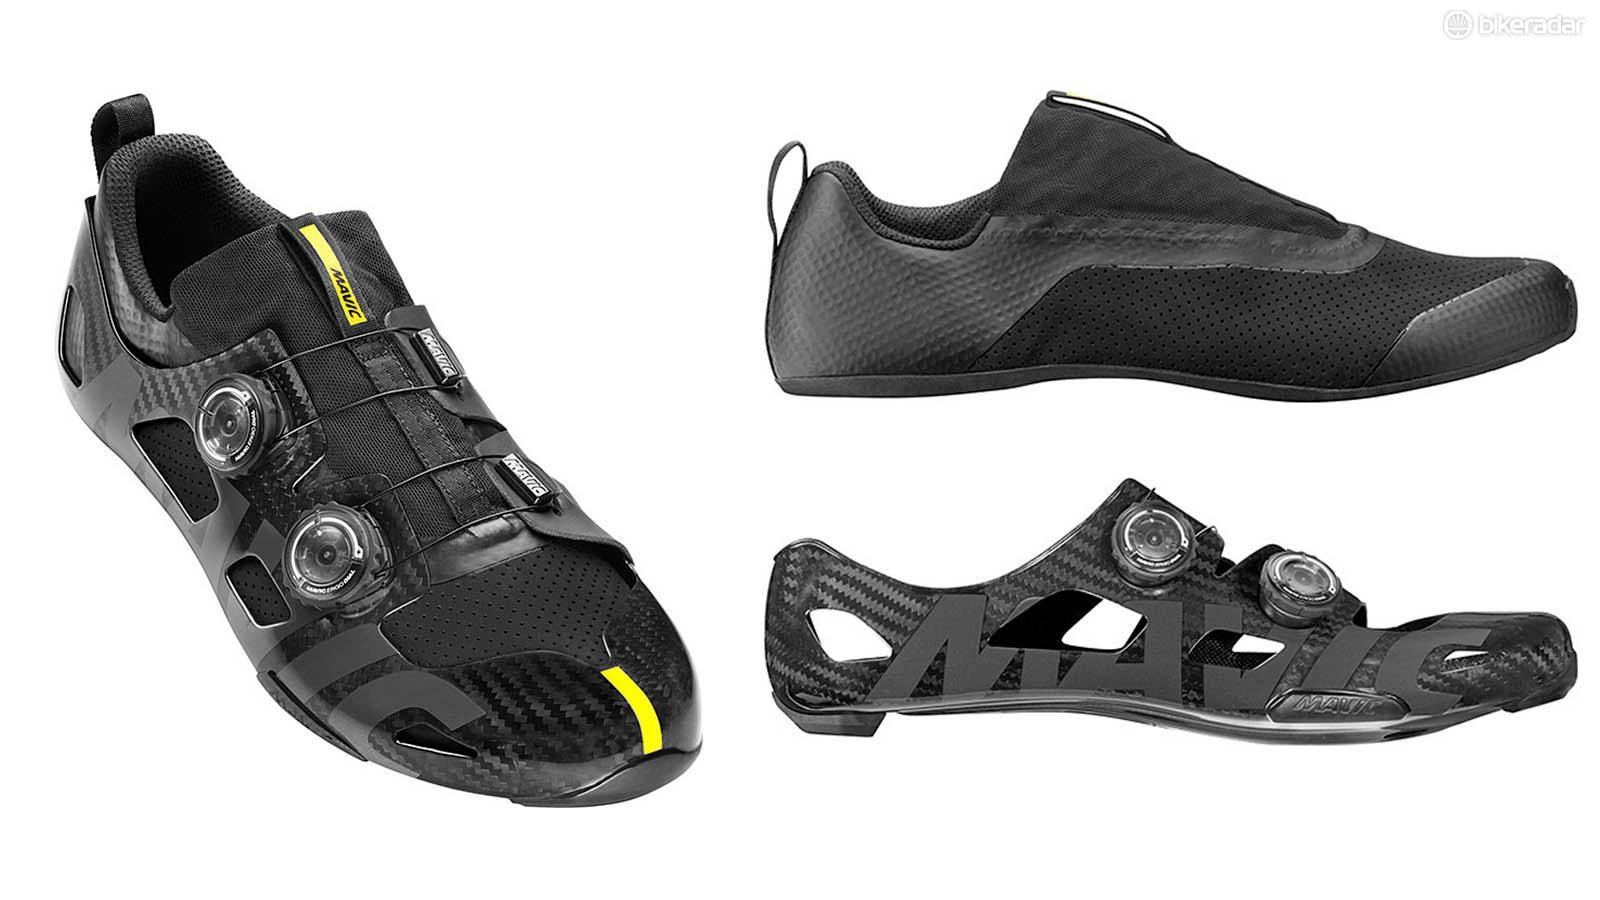 Mavic's Comete Ultimate shoe consists of a carbon shell and inner bootie